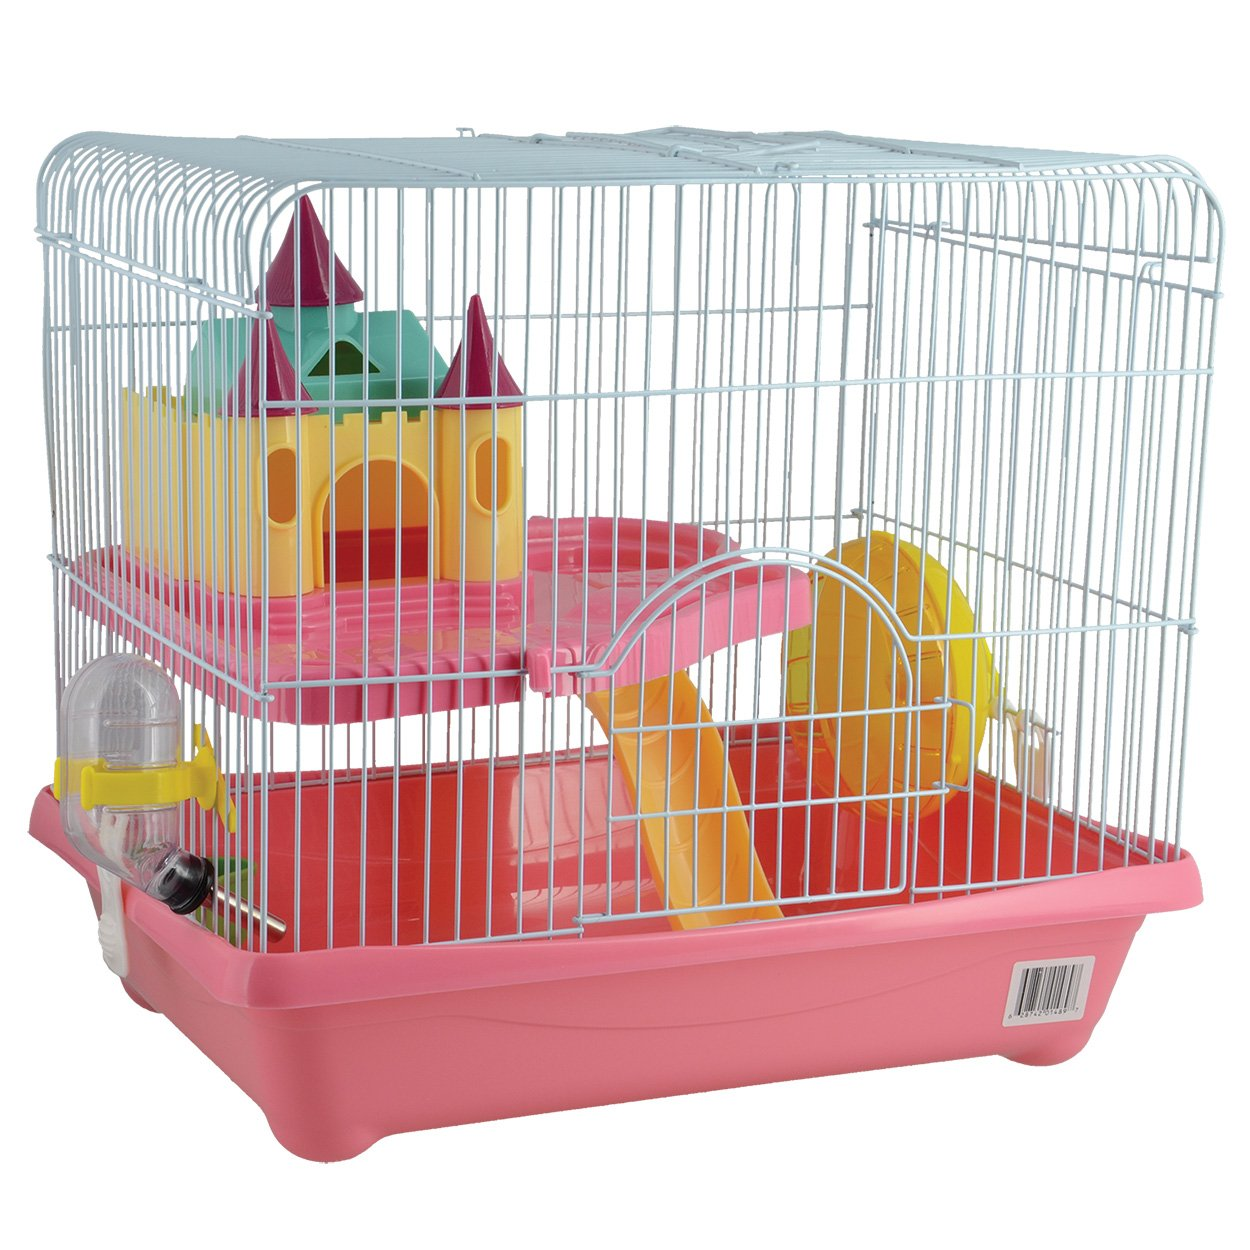 Animal Treasures 31076 Small Animal Castle Cage, Pink